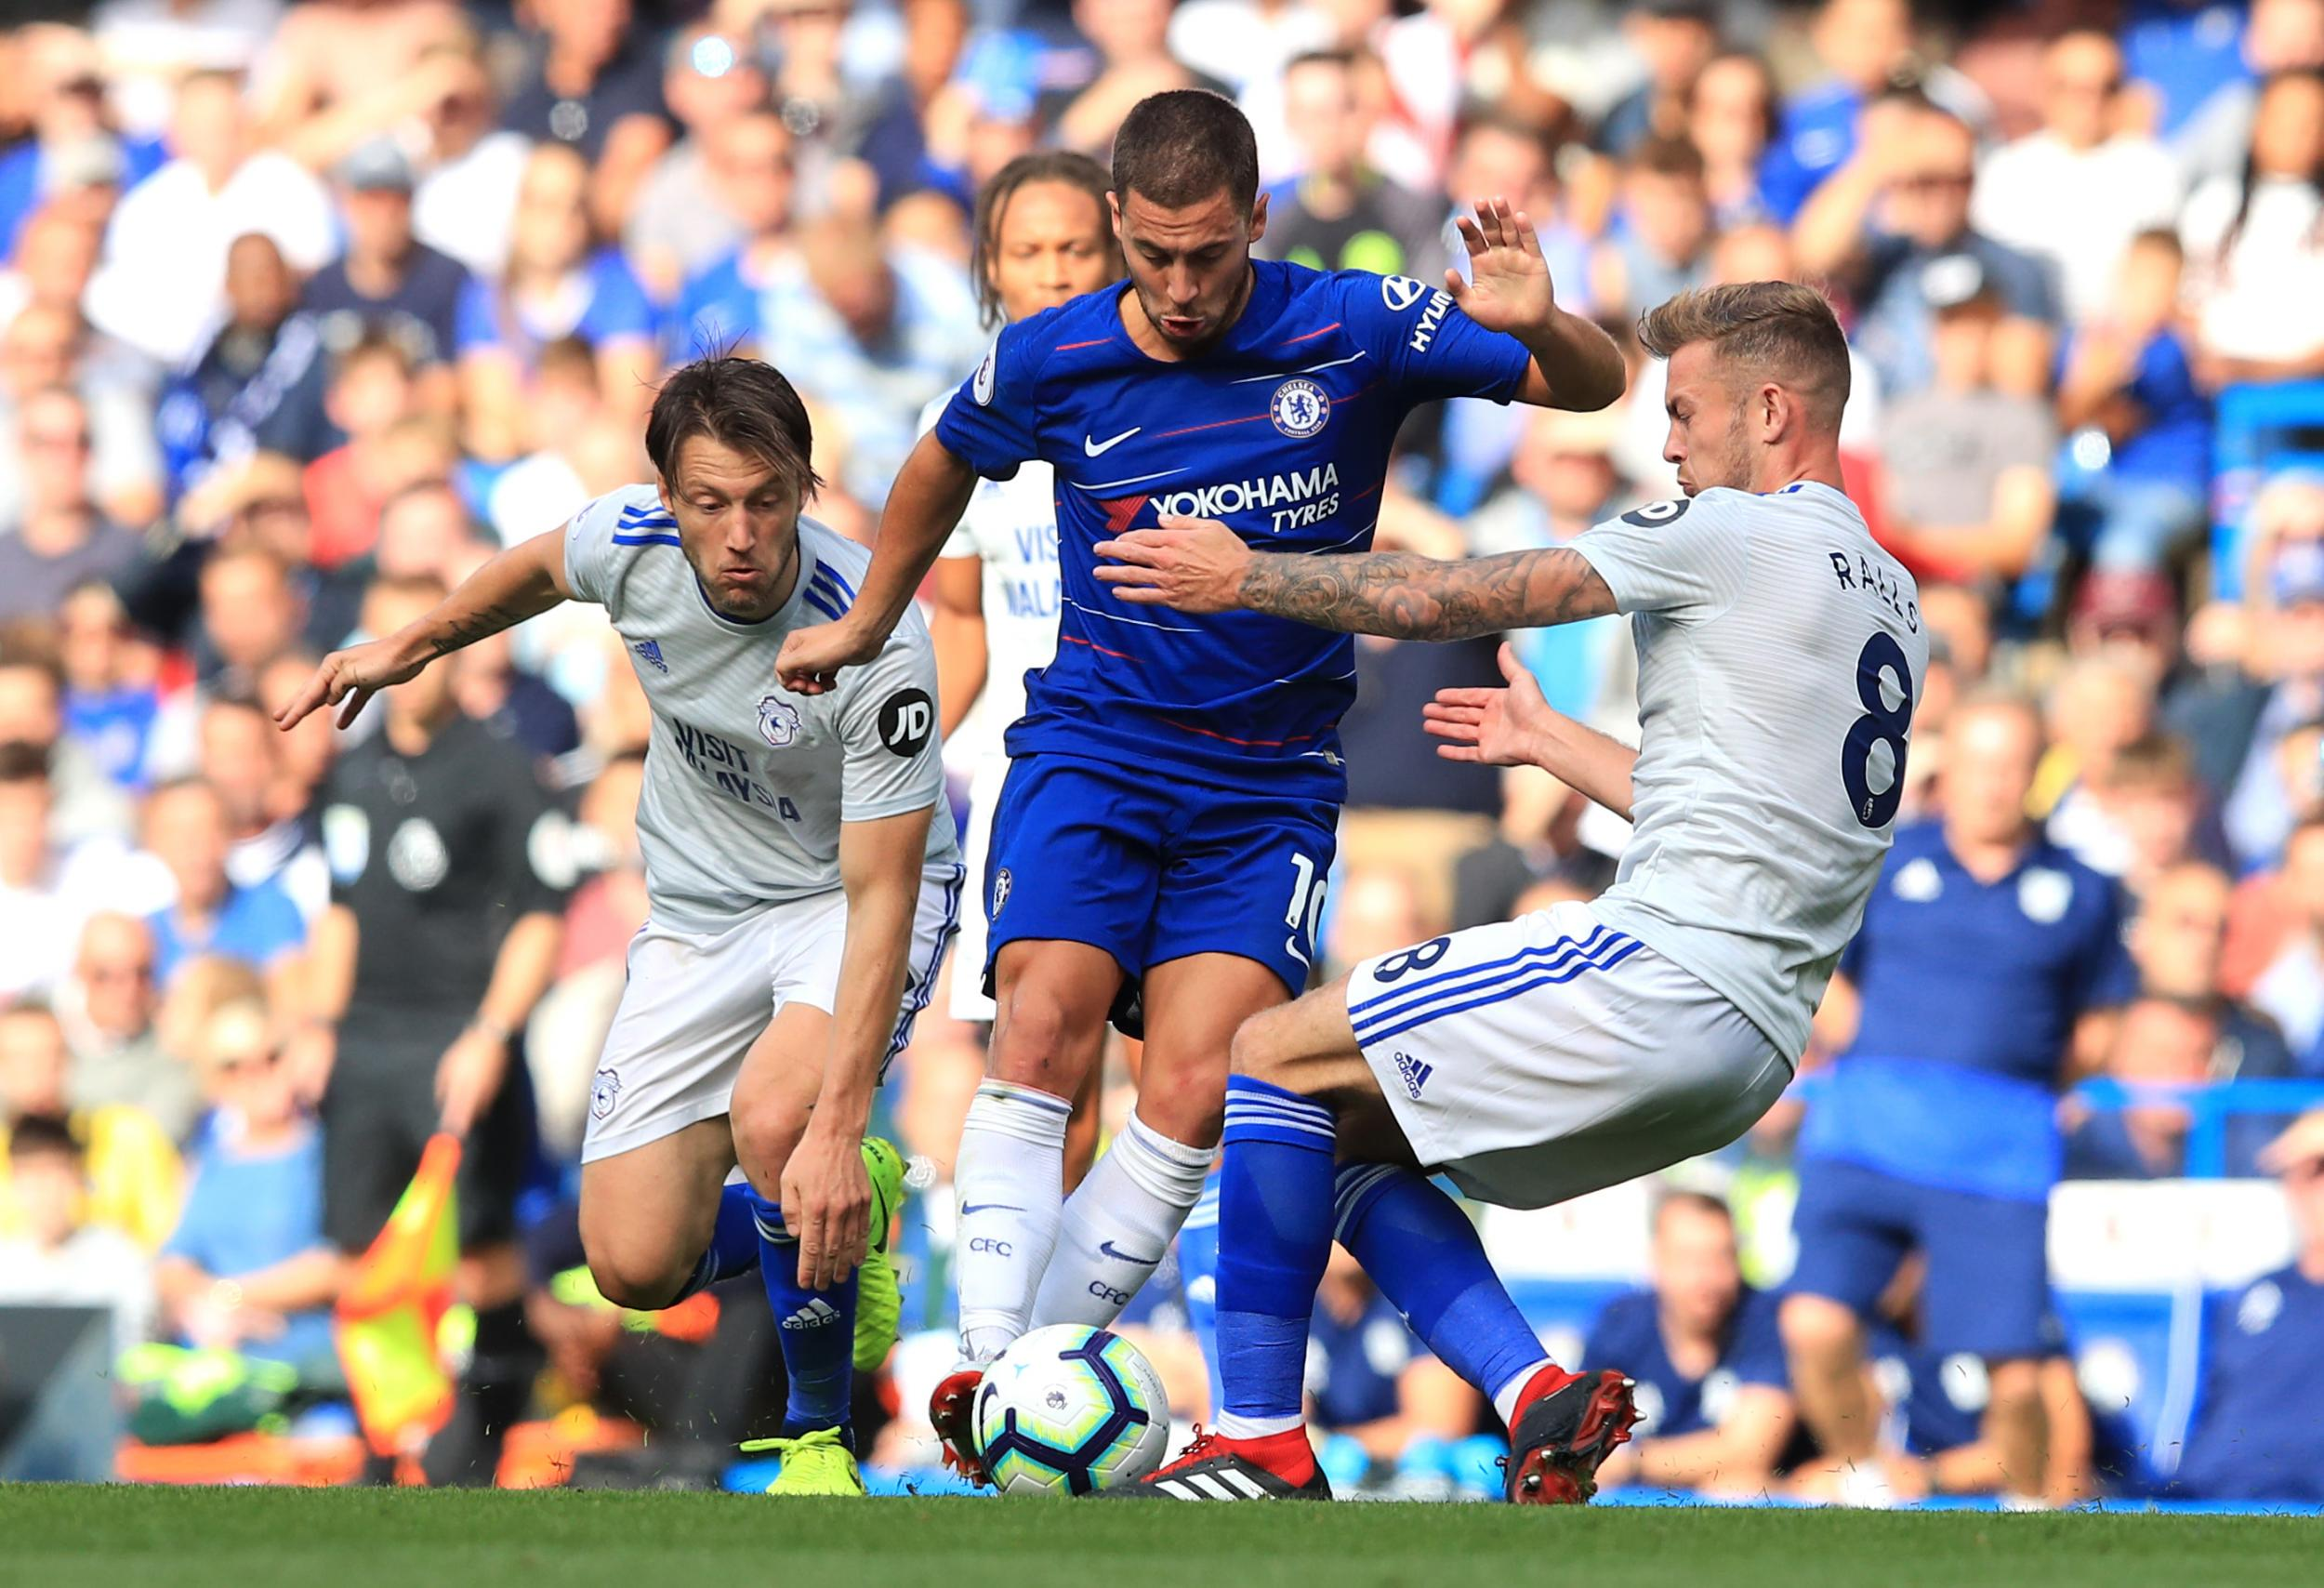 Cardiff Will Welcome Chelsea To Cardiff City Stadium On Sunday For The Teams Match Of Round  In The Premier League The Hosts Are The First Team In The